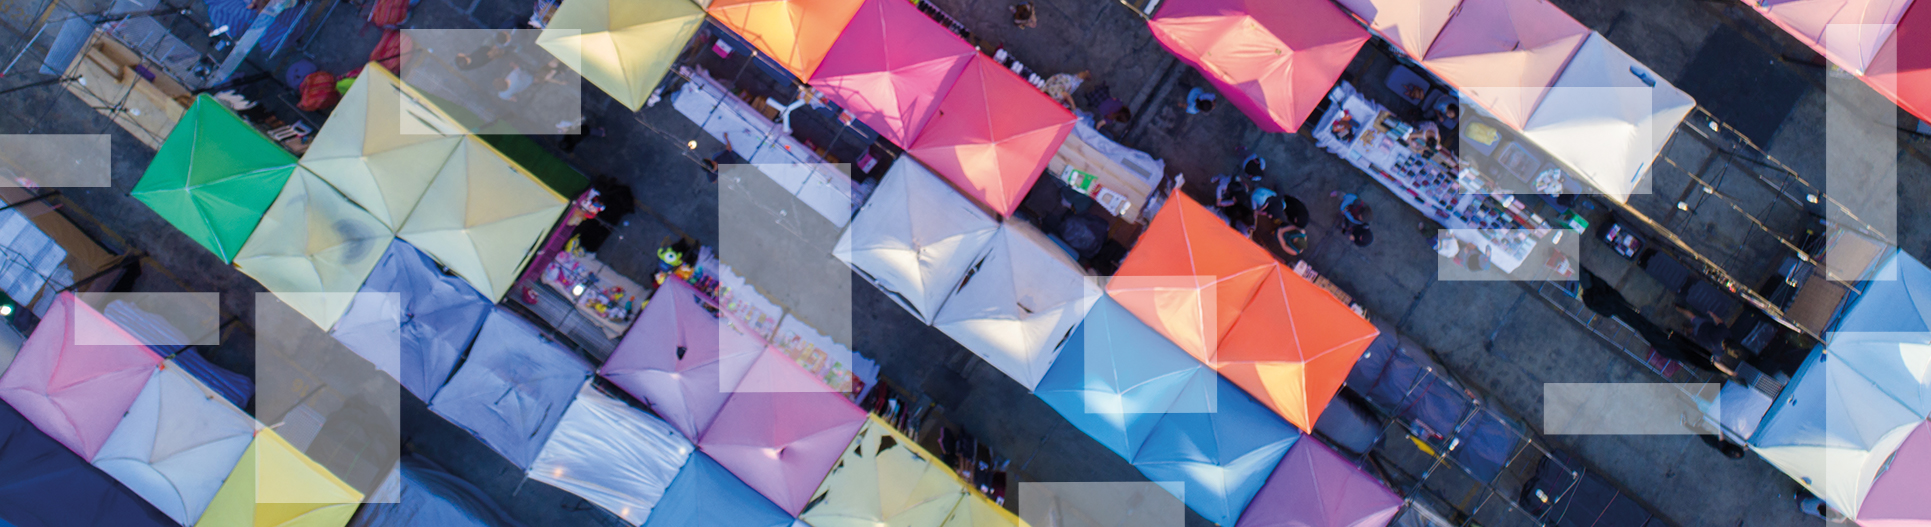 Vibrant colored, pop-up vendor tents with people shopping